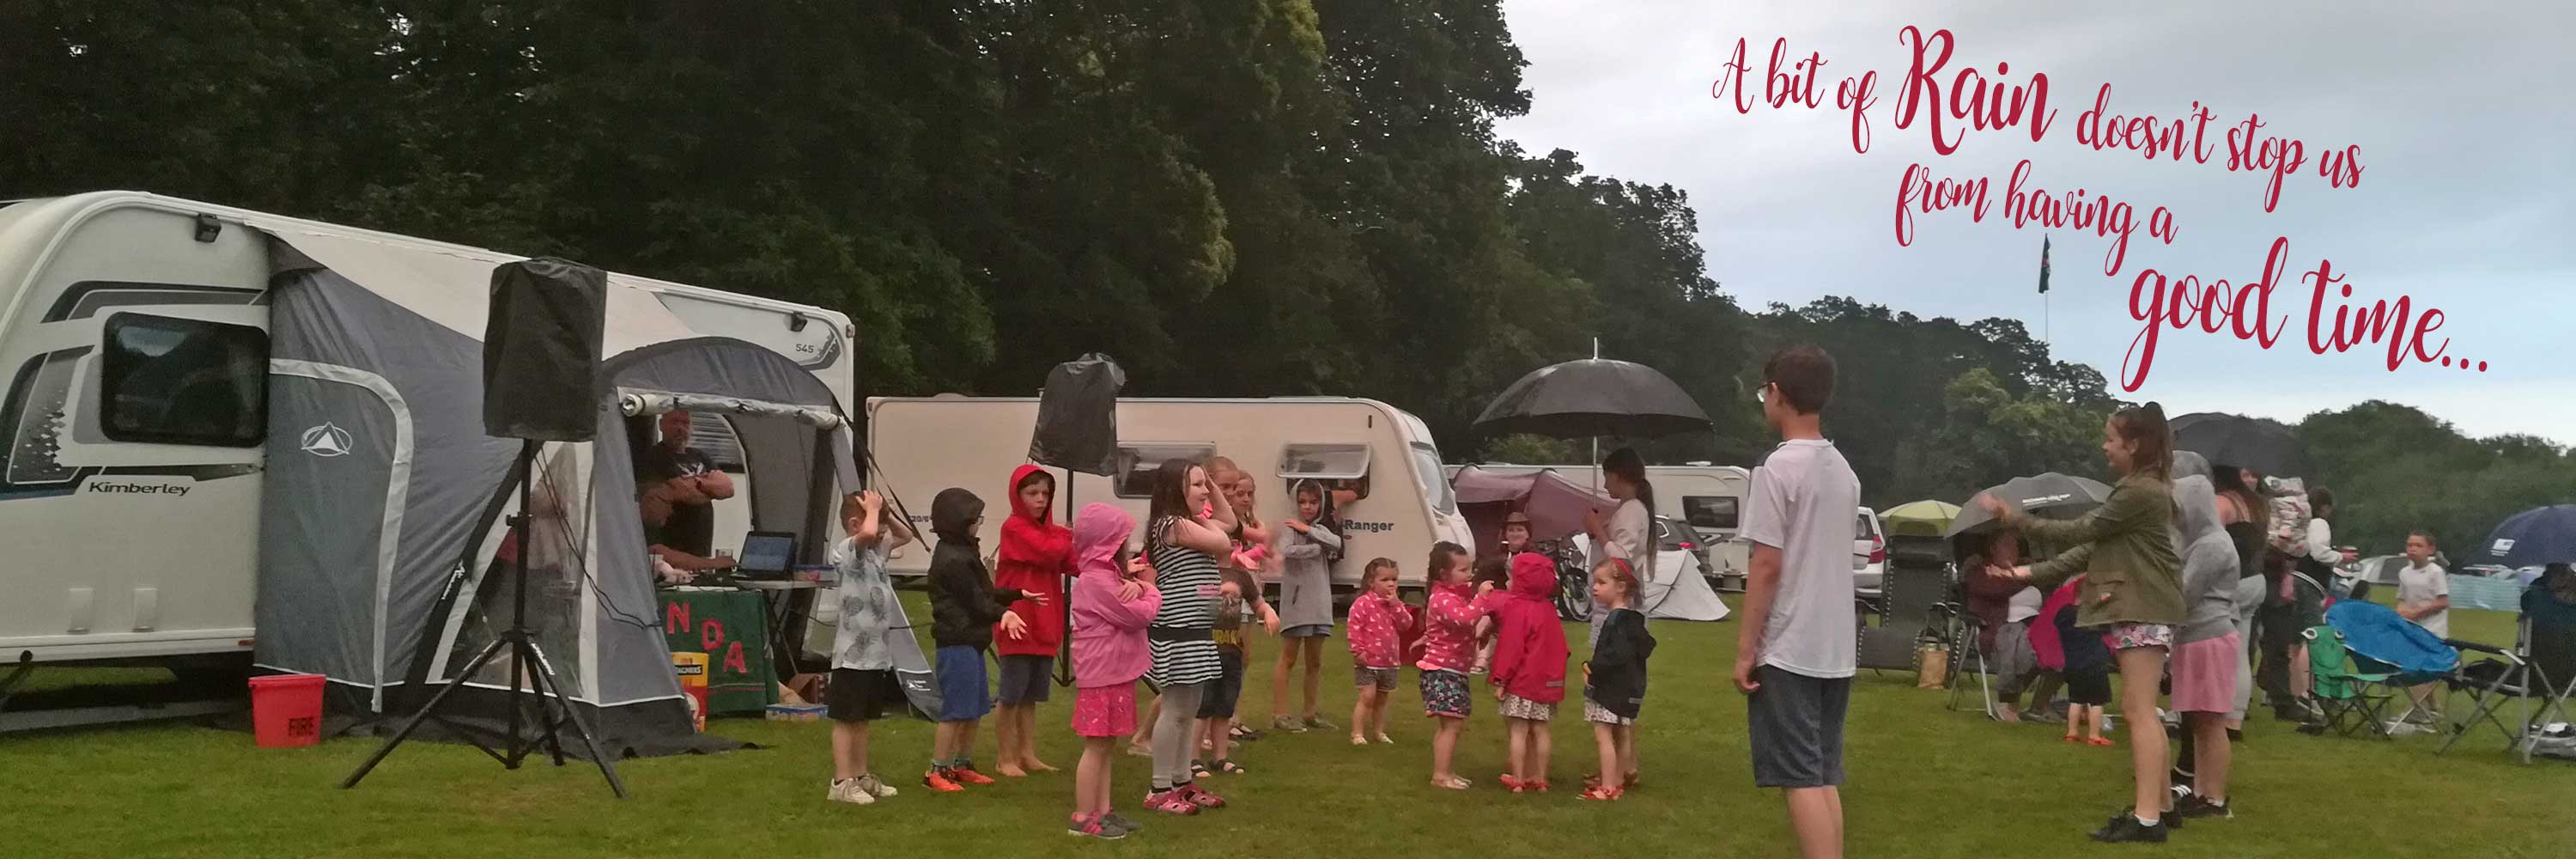 Camping and Caravanning Youth Club Notts DA